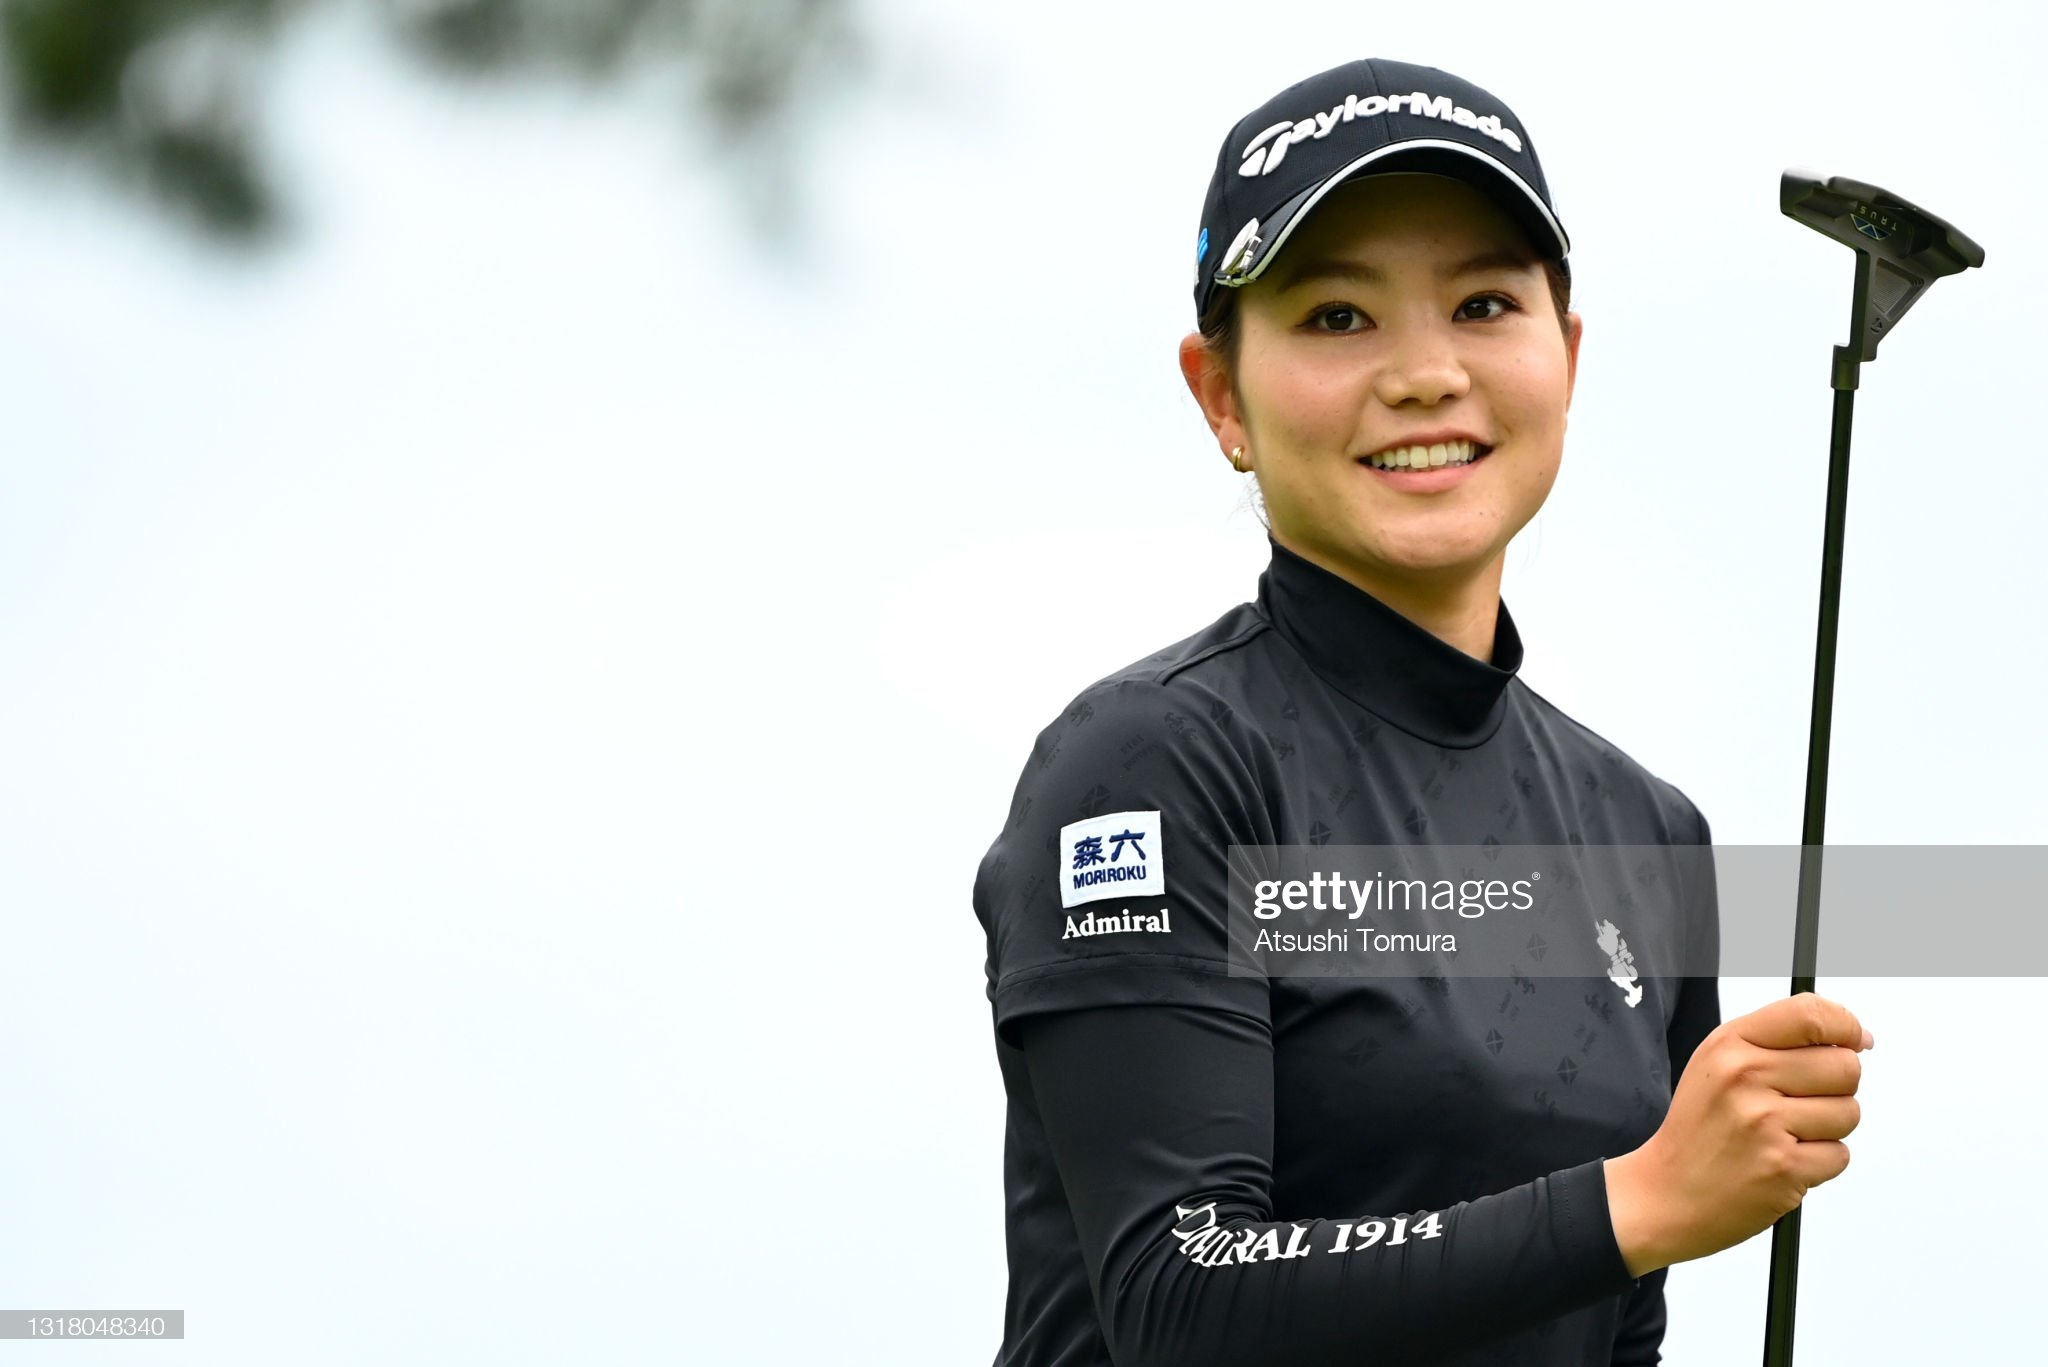 https://media.gettyimages.com/photos/akira-yamaji-of-japan-reacts-after-her-tee-shot-on-the-2nd-hole-the-picture-id1318048340?s=2048x2048